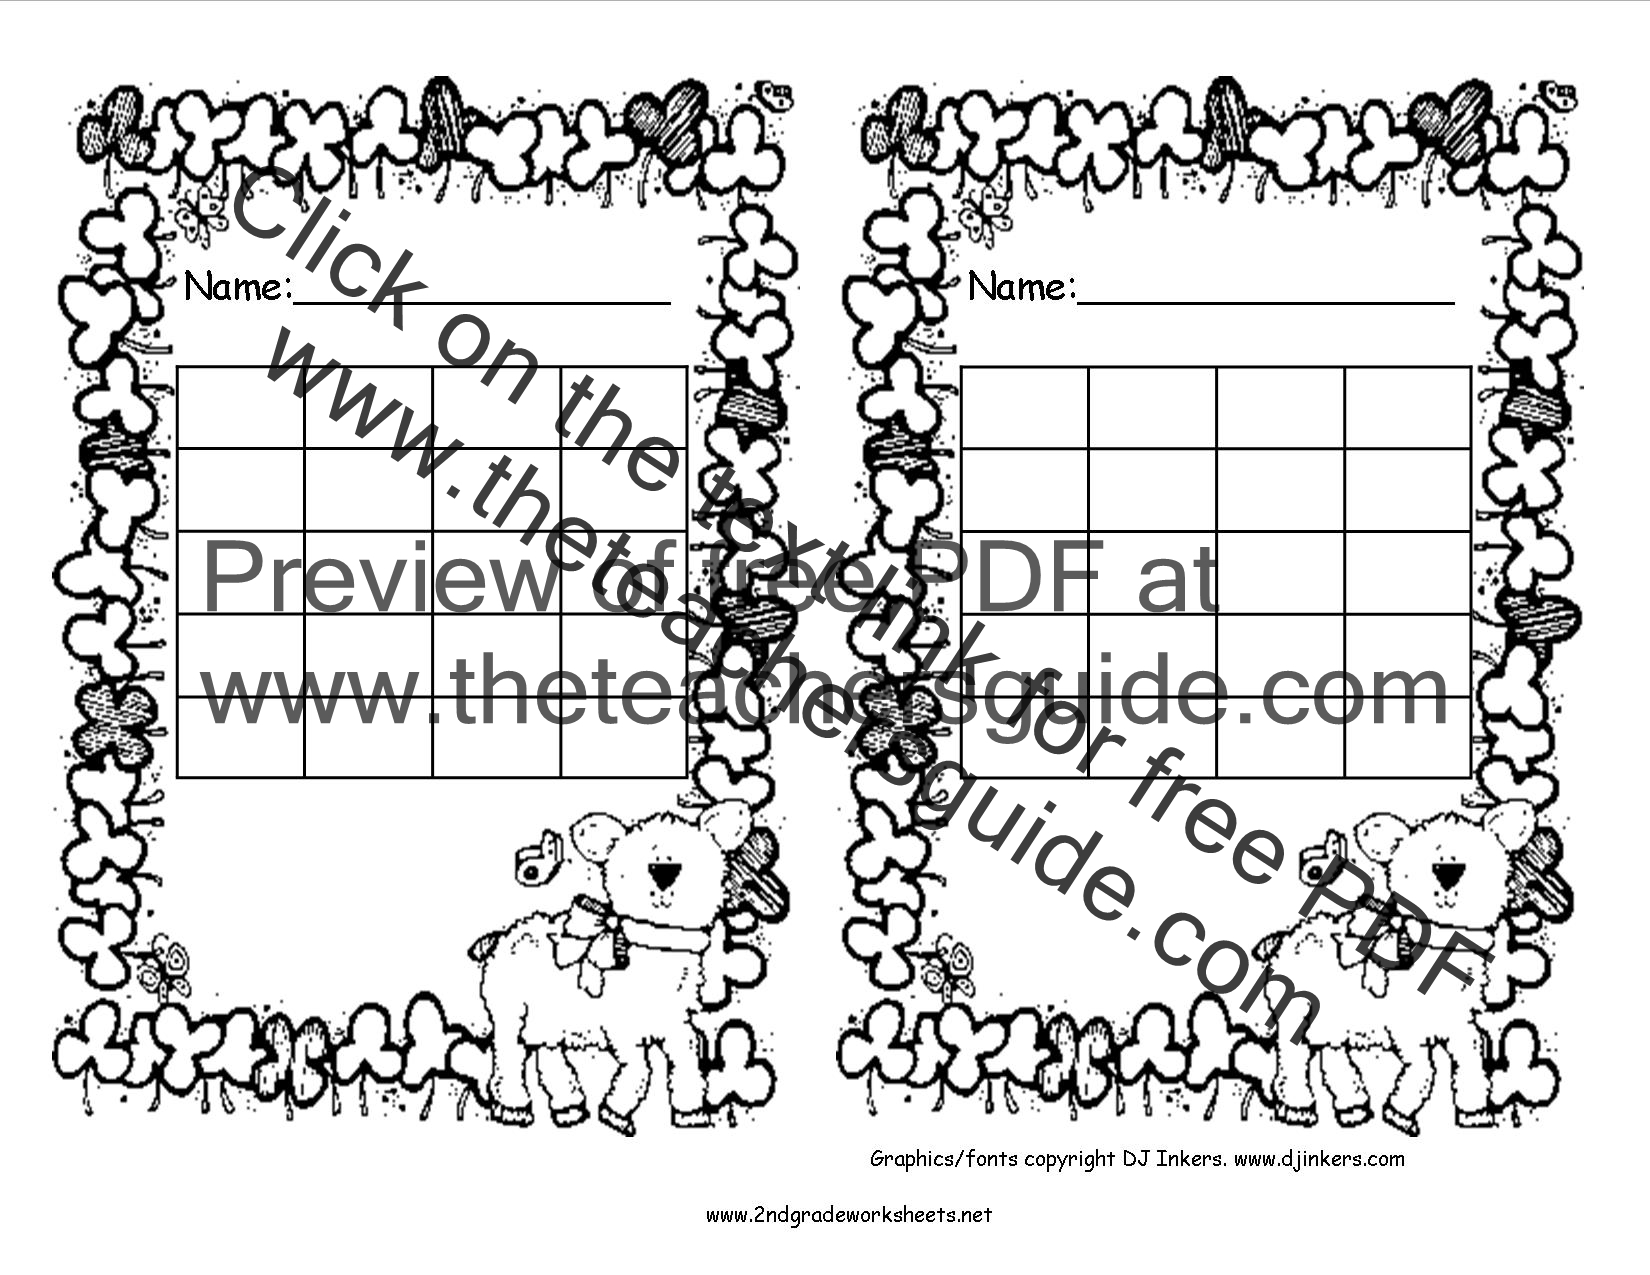 St Patrick S Day Printouts From The Teacher S Guide